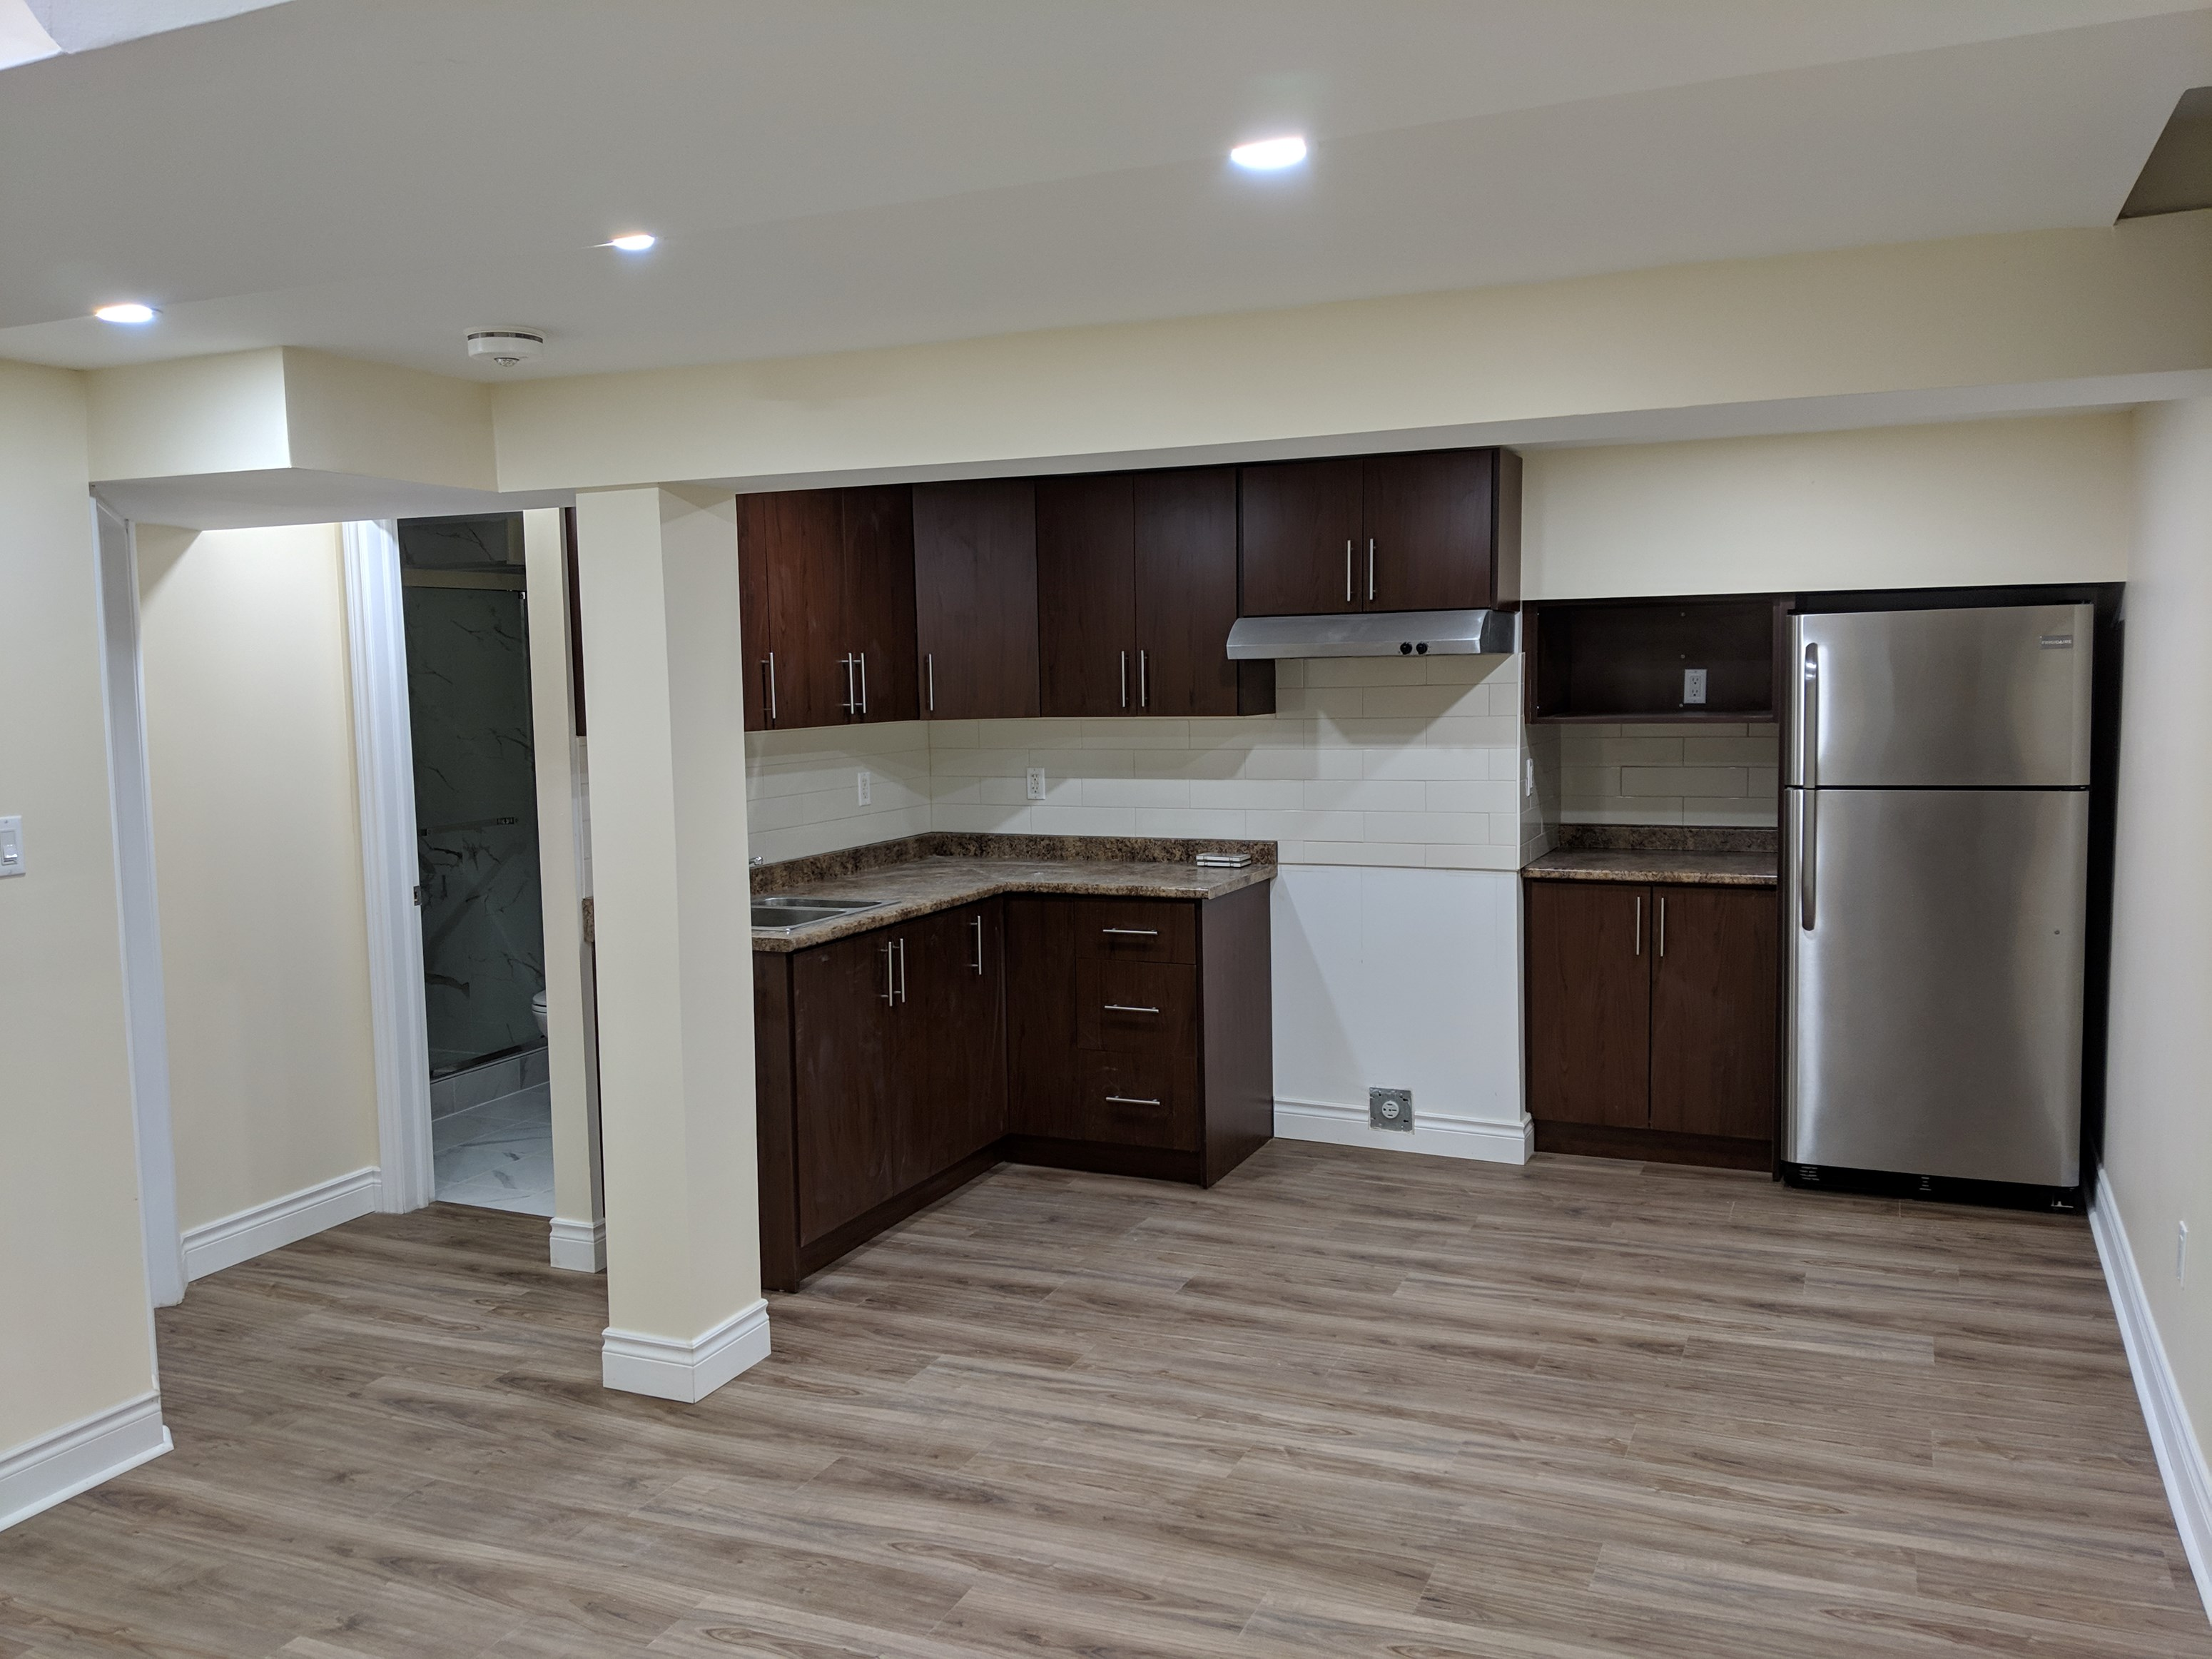 rooms for rent in toronto apartments flats commercial space rh indianroommates sulekha com